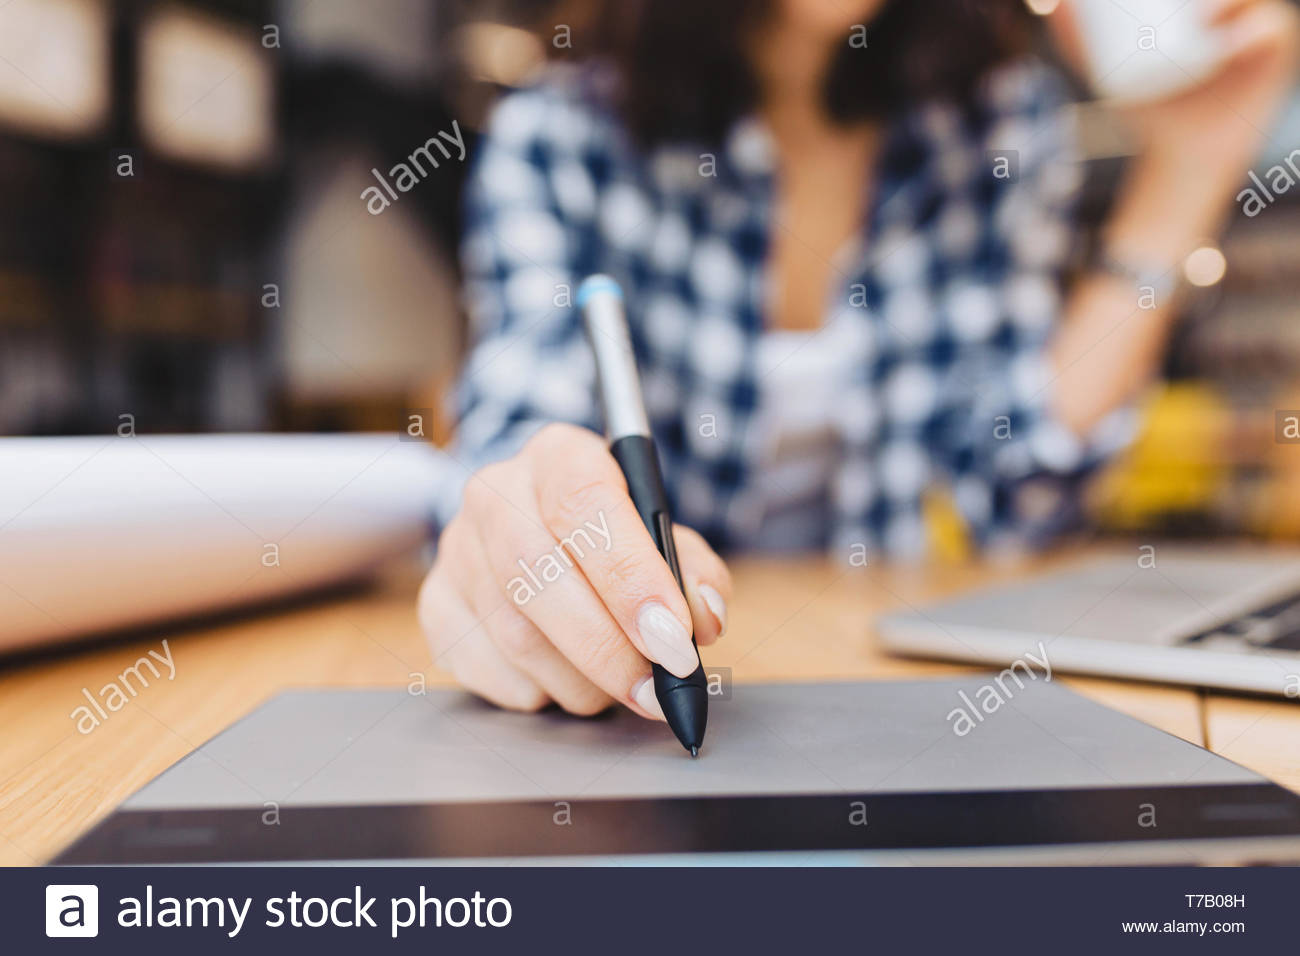 Closeup image hand of woman designing on table in library surround work stuff. Laptop, creative work, graphic design, freelancer, smart student, love job Stock Photo